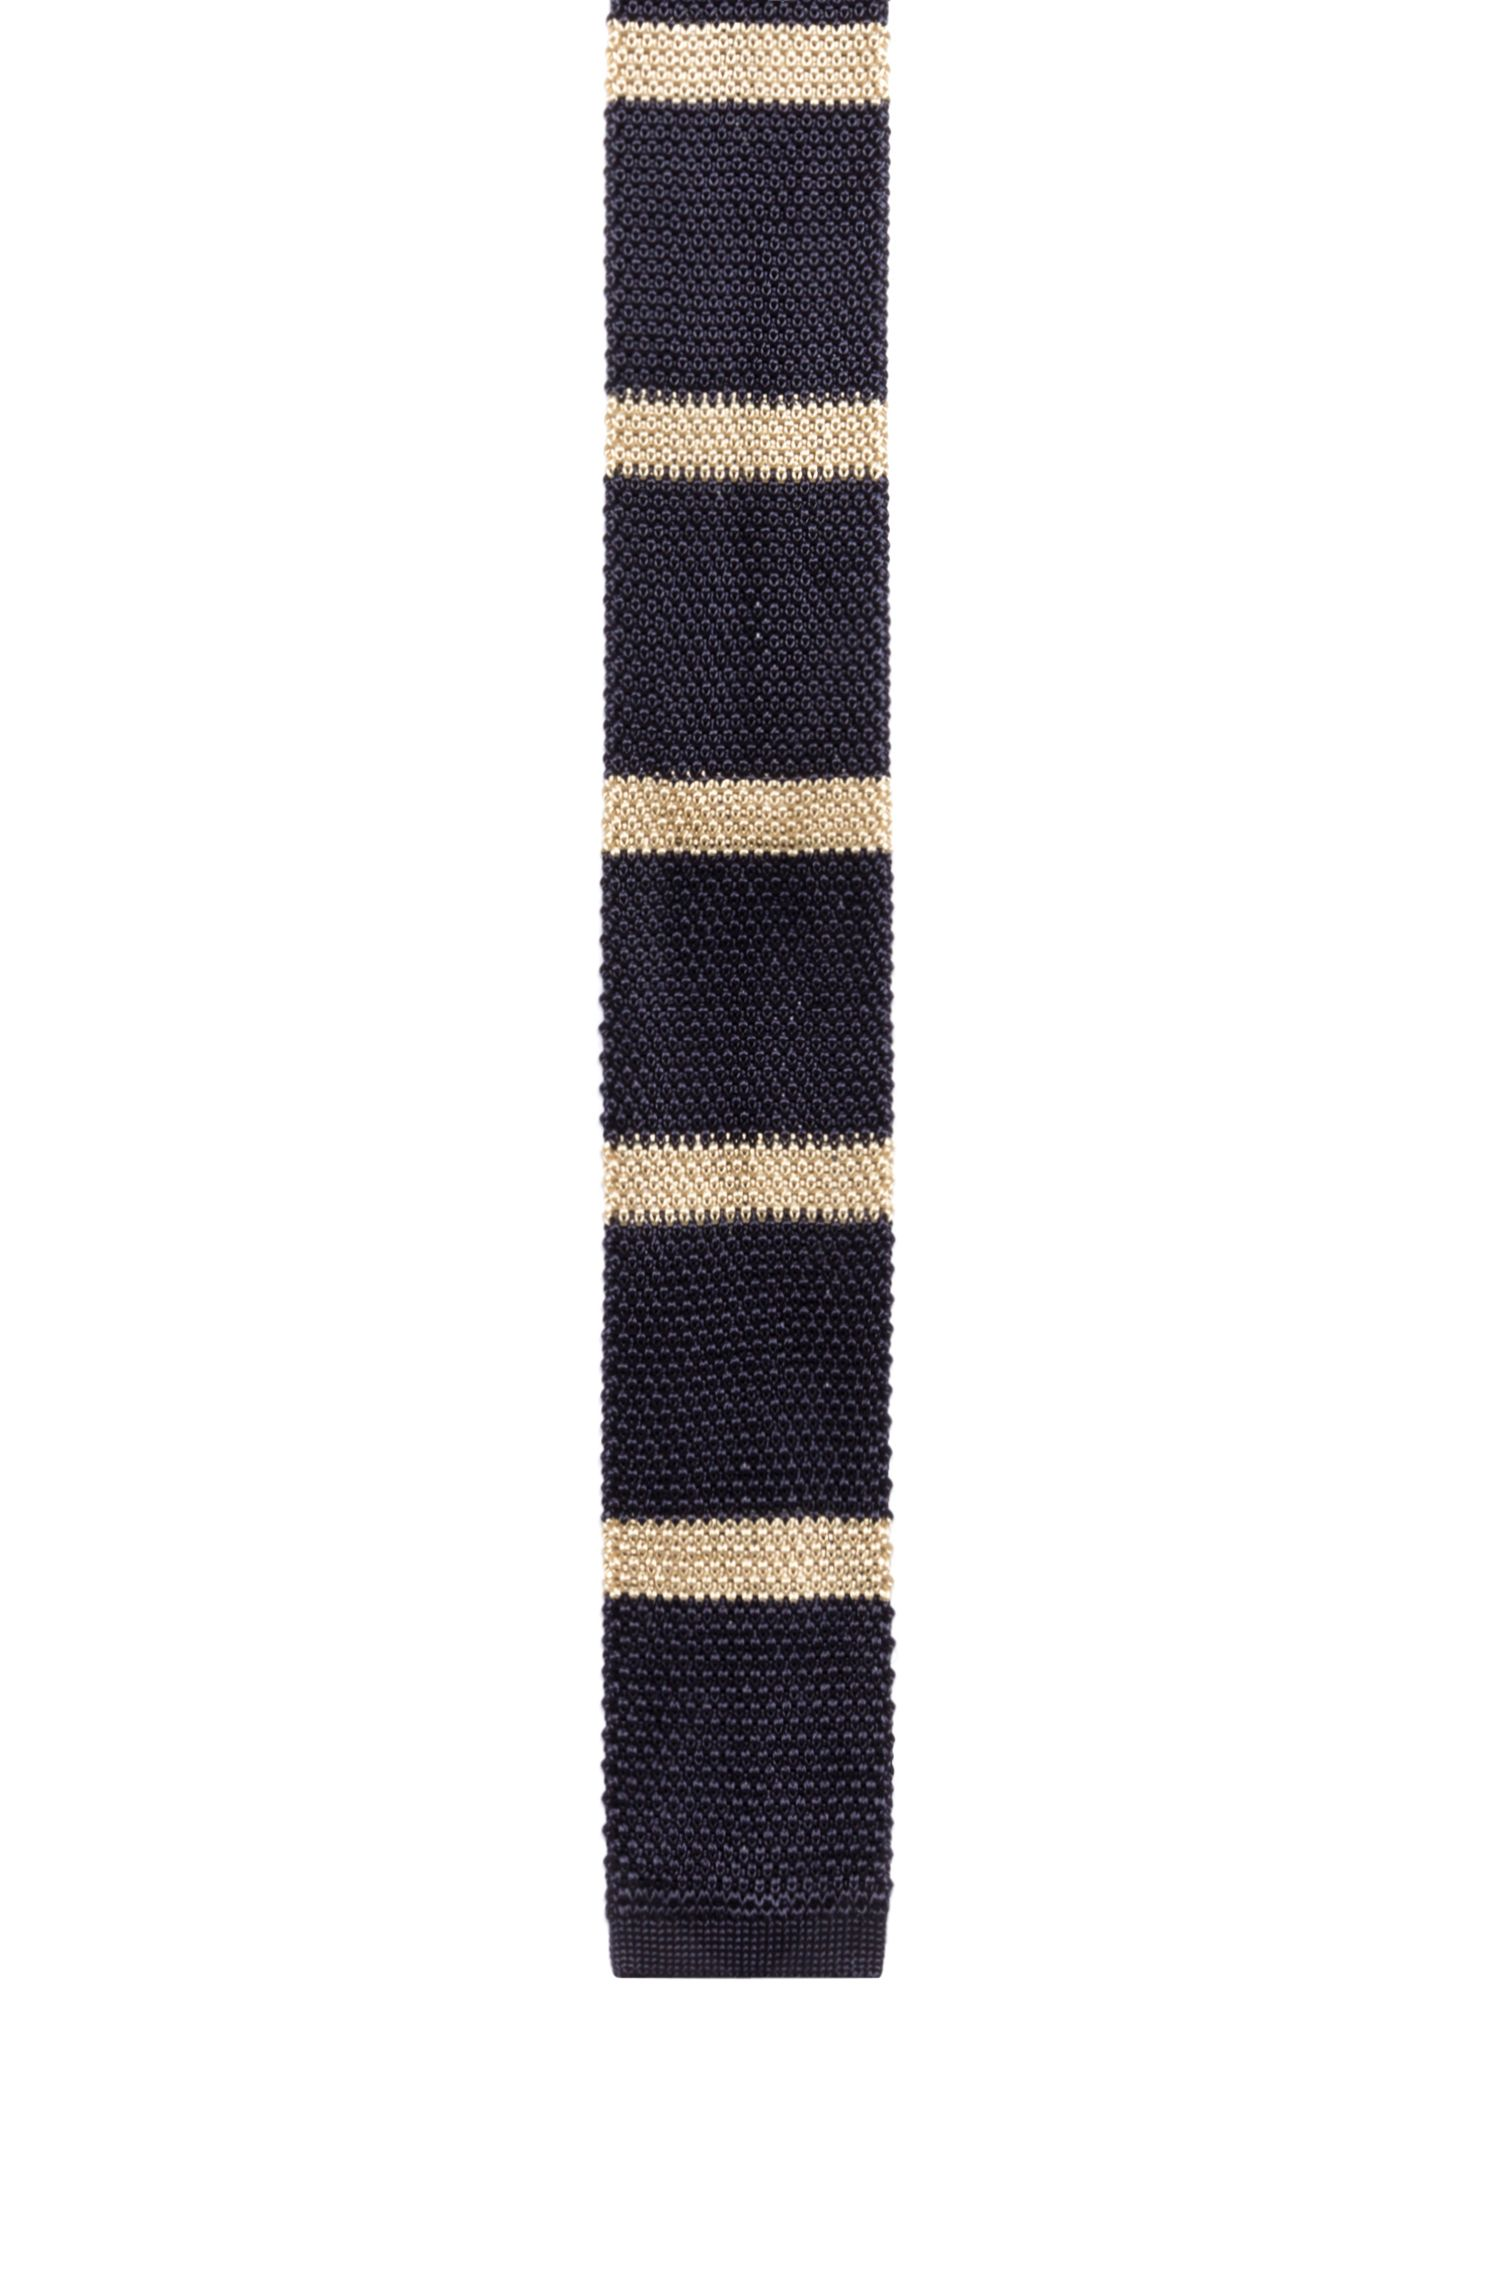 Heavy-knit striped tie with a squared end